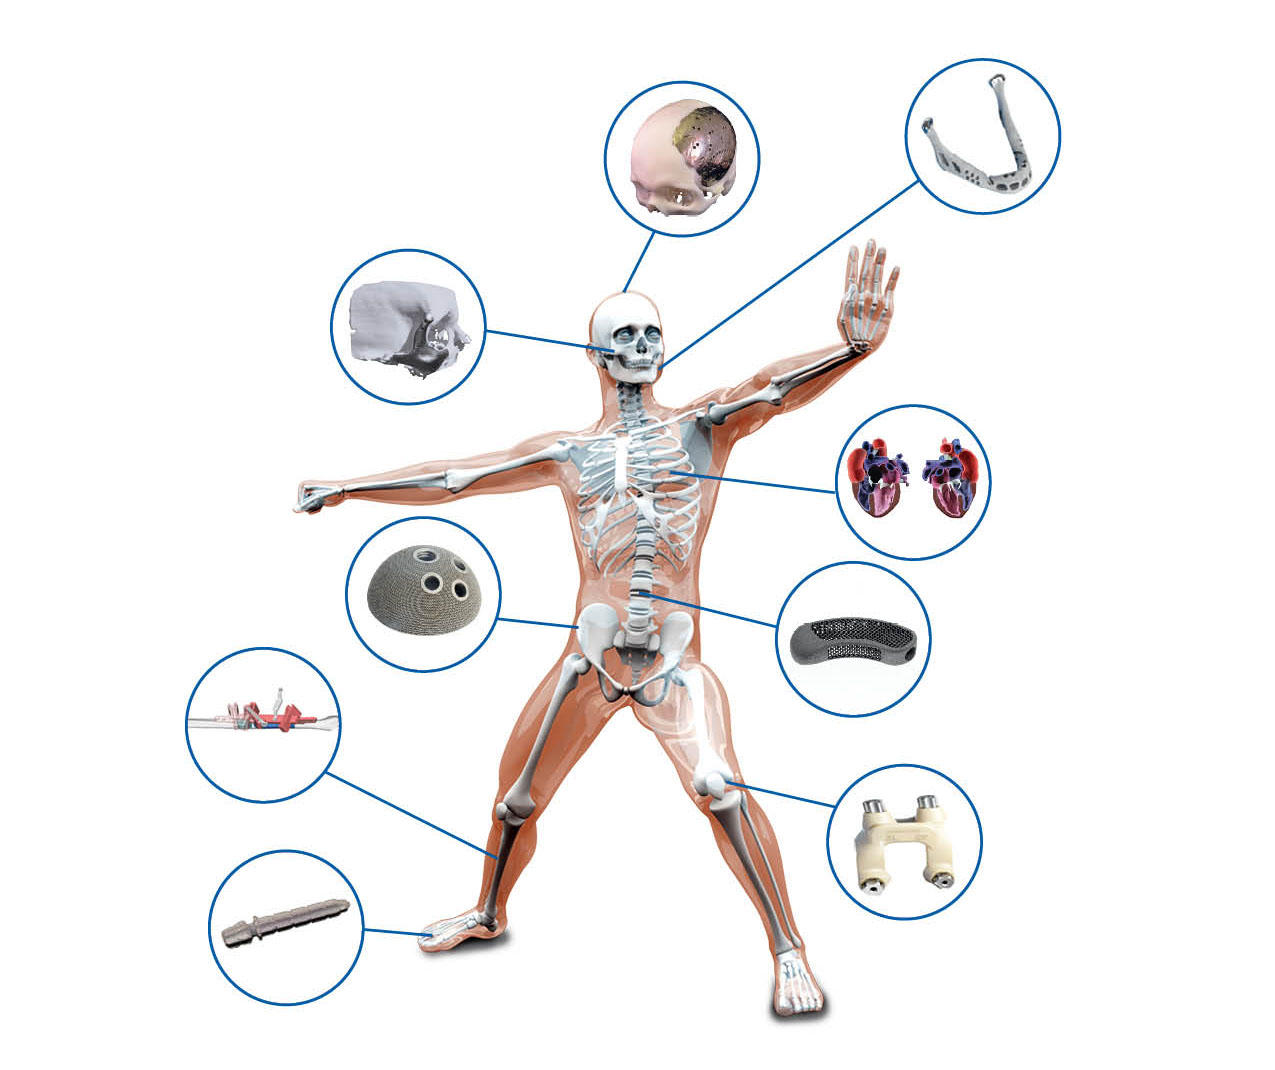 3D Systems is focusing heavily on the medical implant market